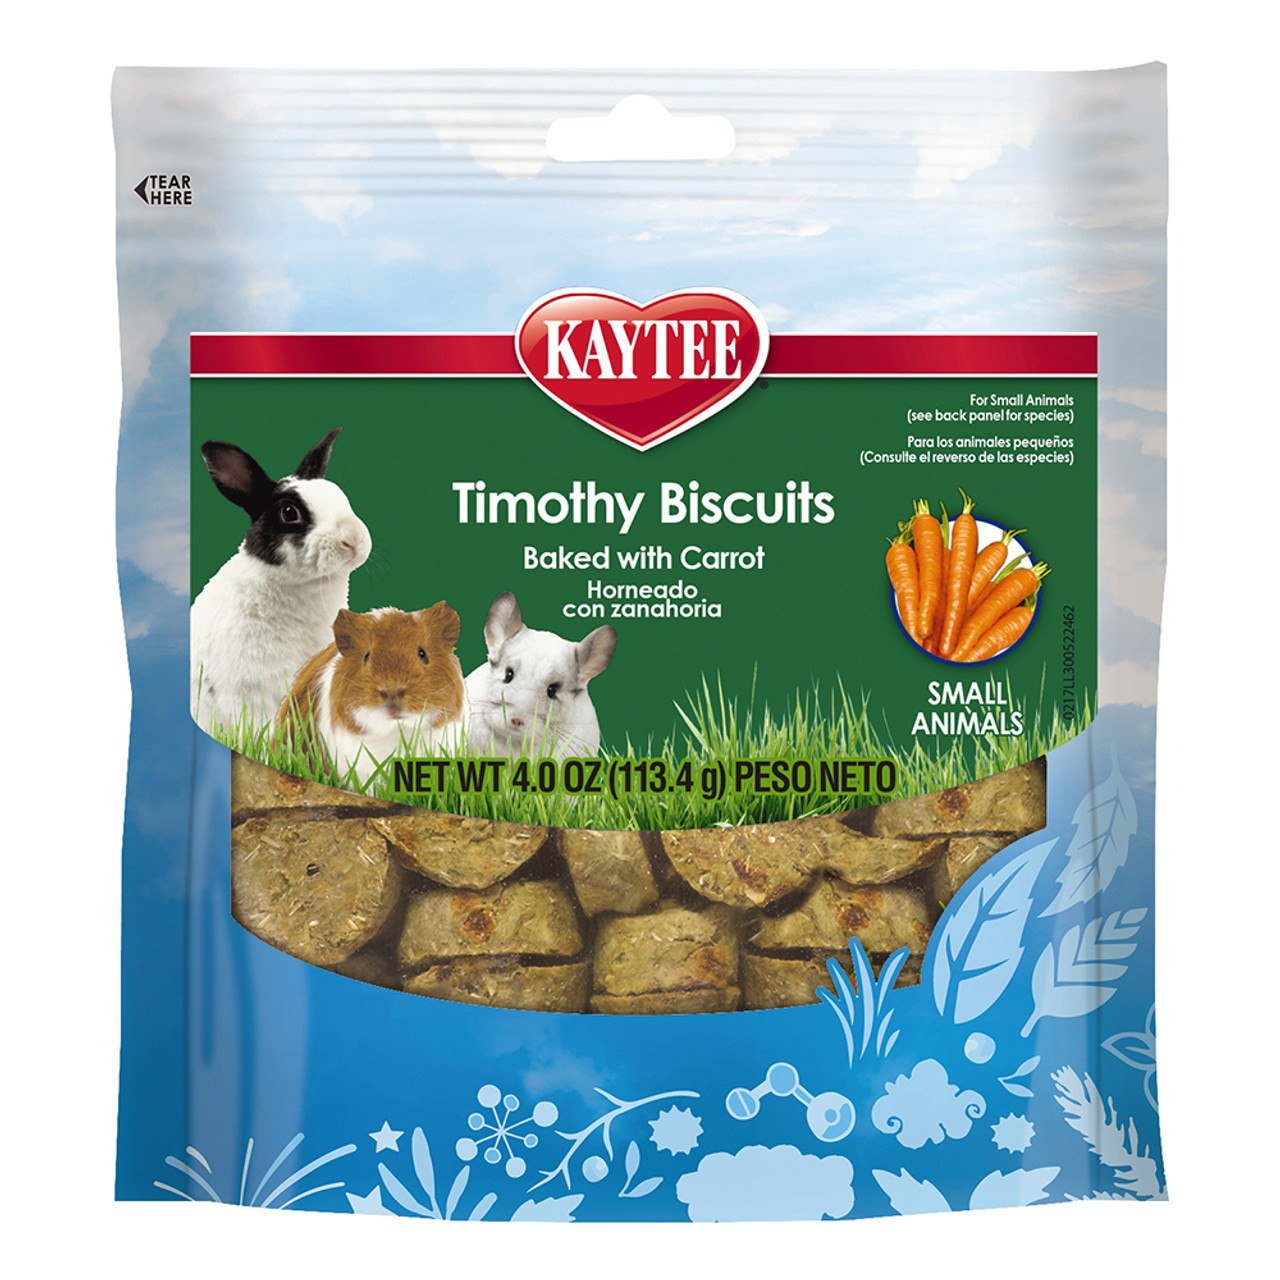 Kaytee Timothy Biscuits Baked Carrot Small Animal Treats